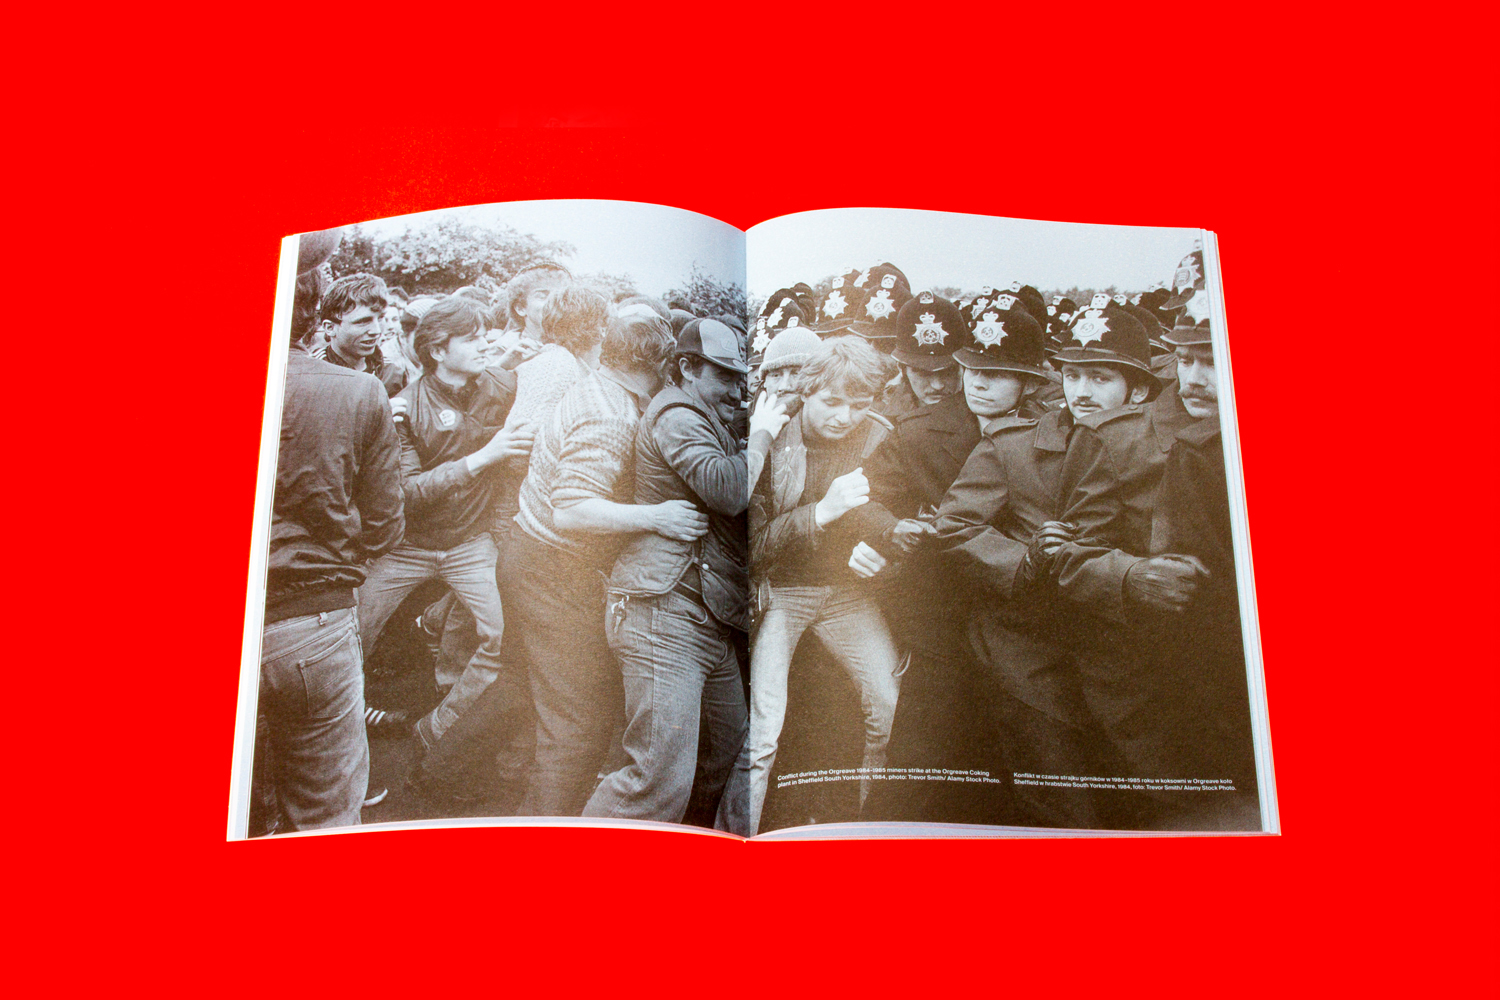 Studio Pyda Jeremy Deller – Battle of Orgreave